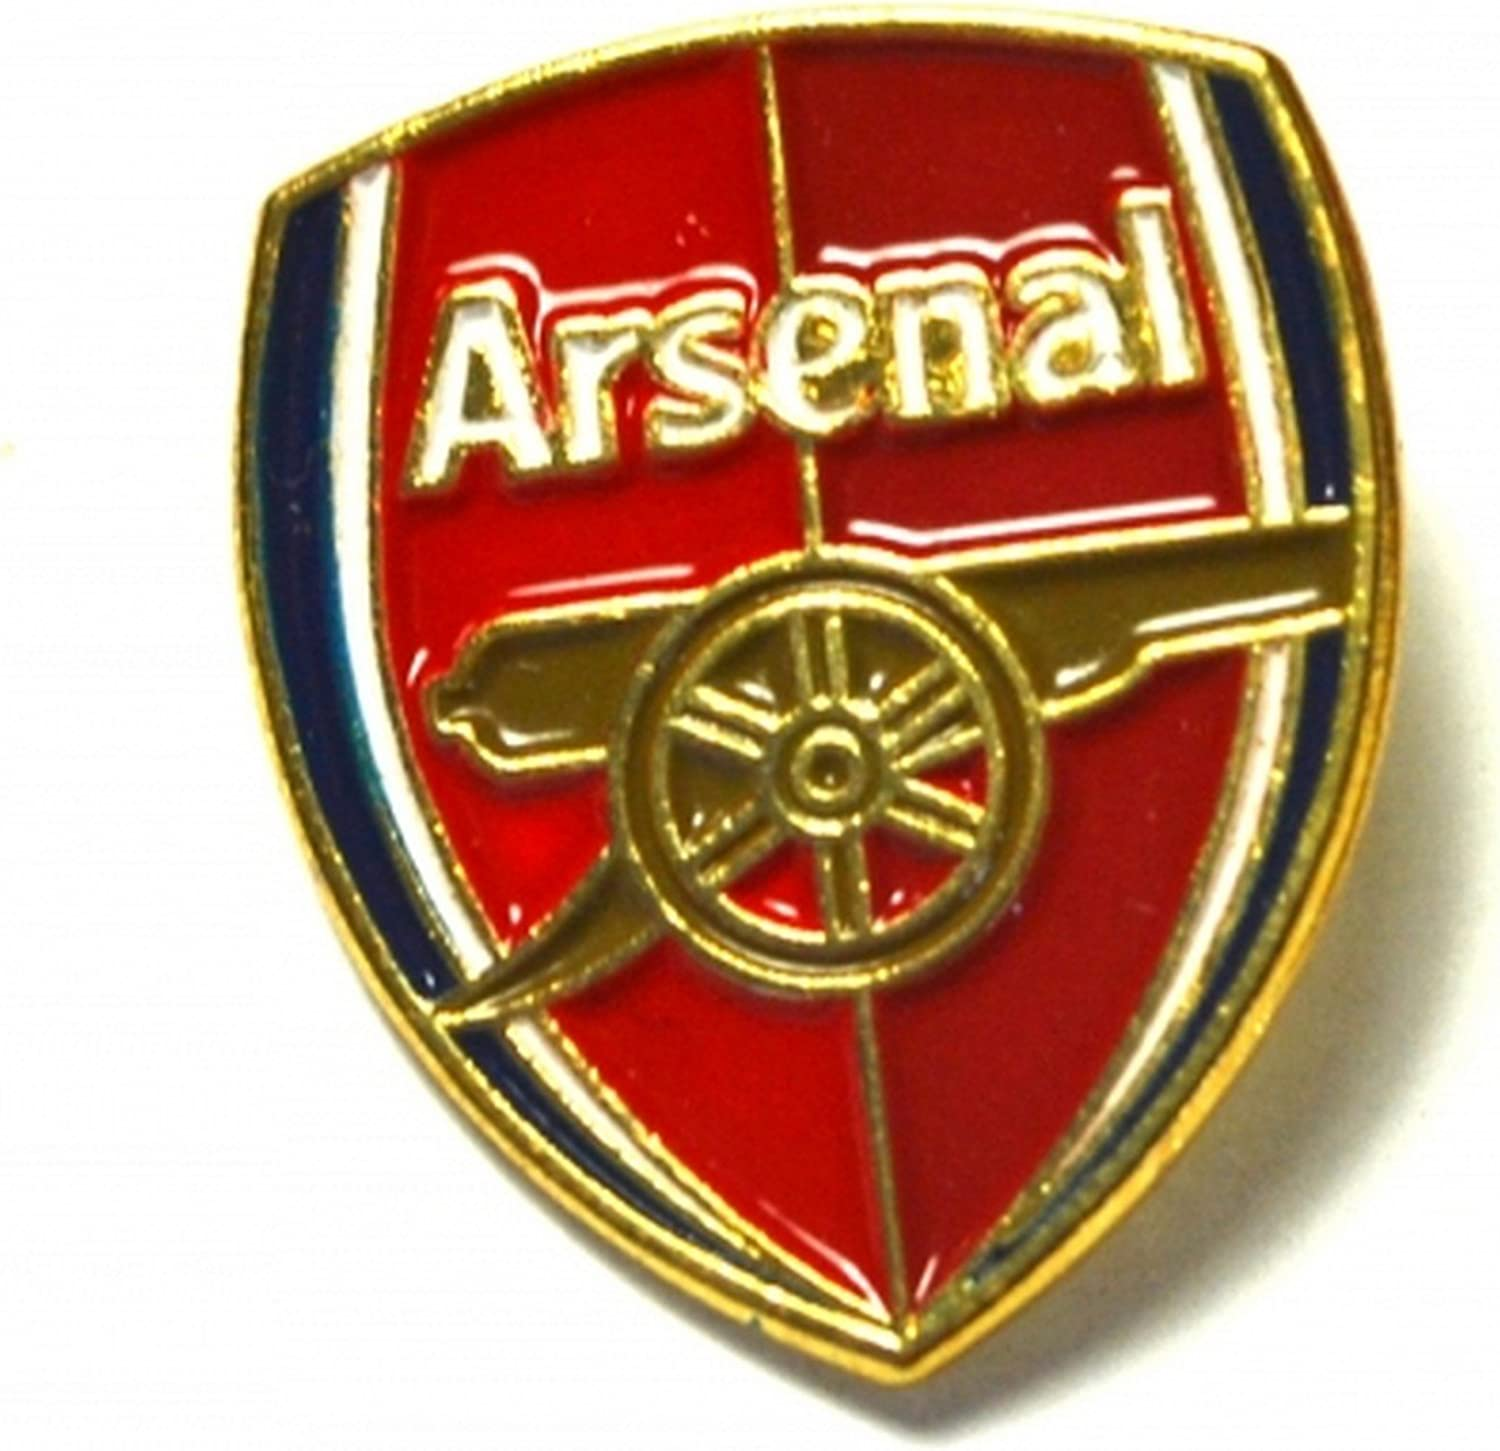 Official Arsenal FC Enamel Crest Pin Badge New on Card